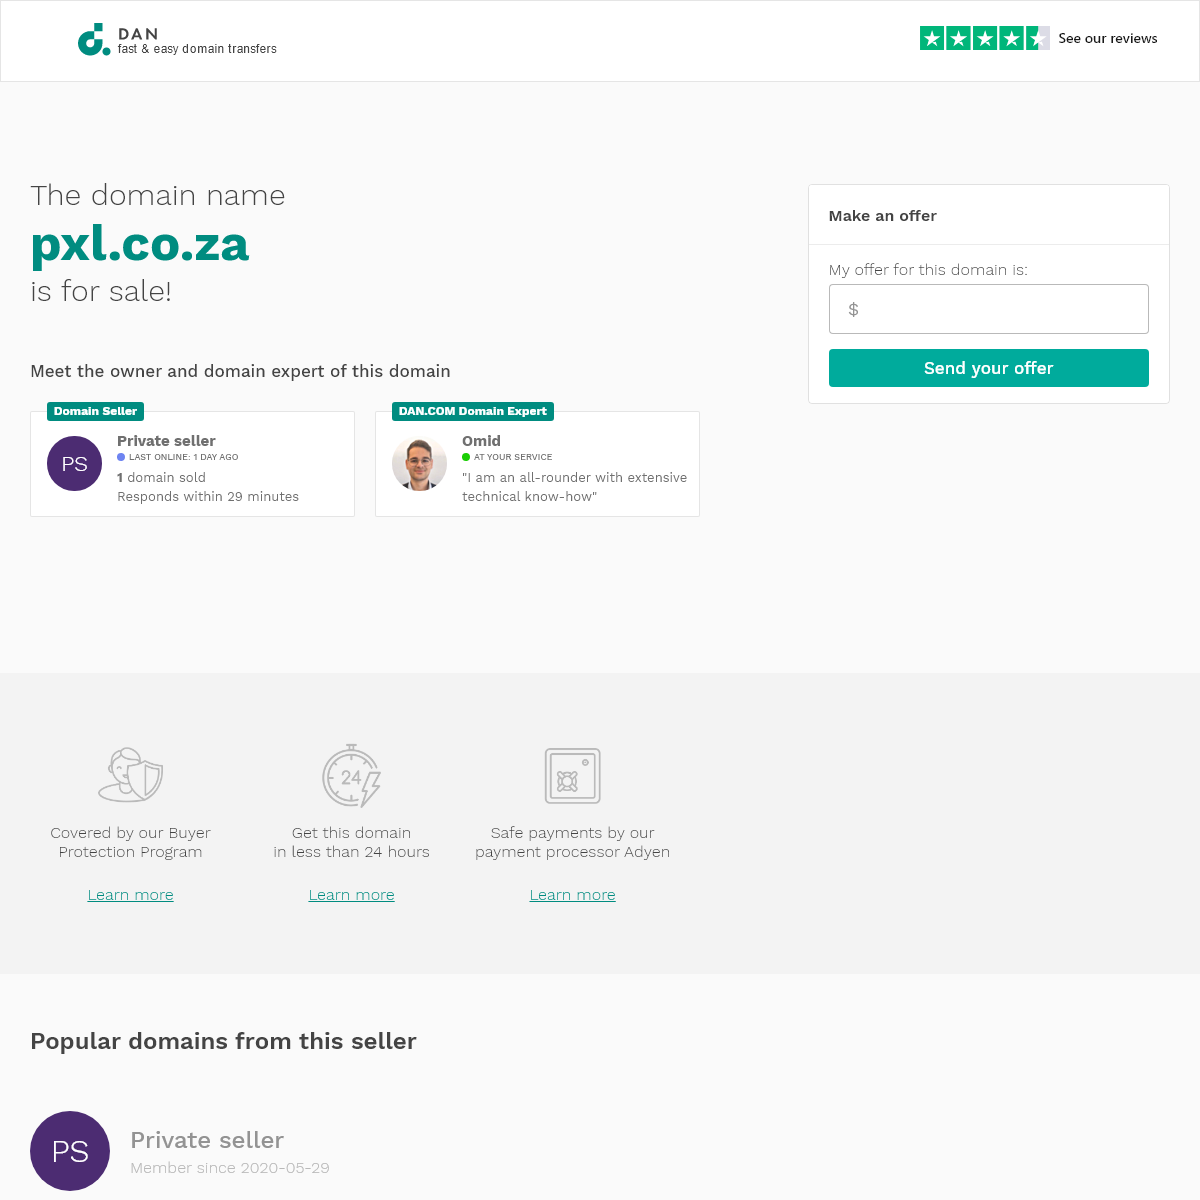 The domain name pxl.co.za is for sale